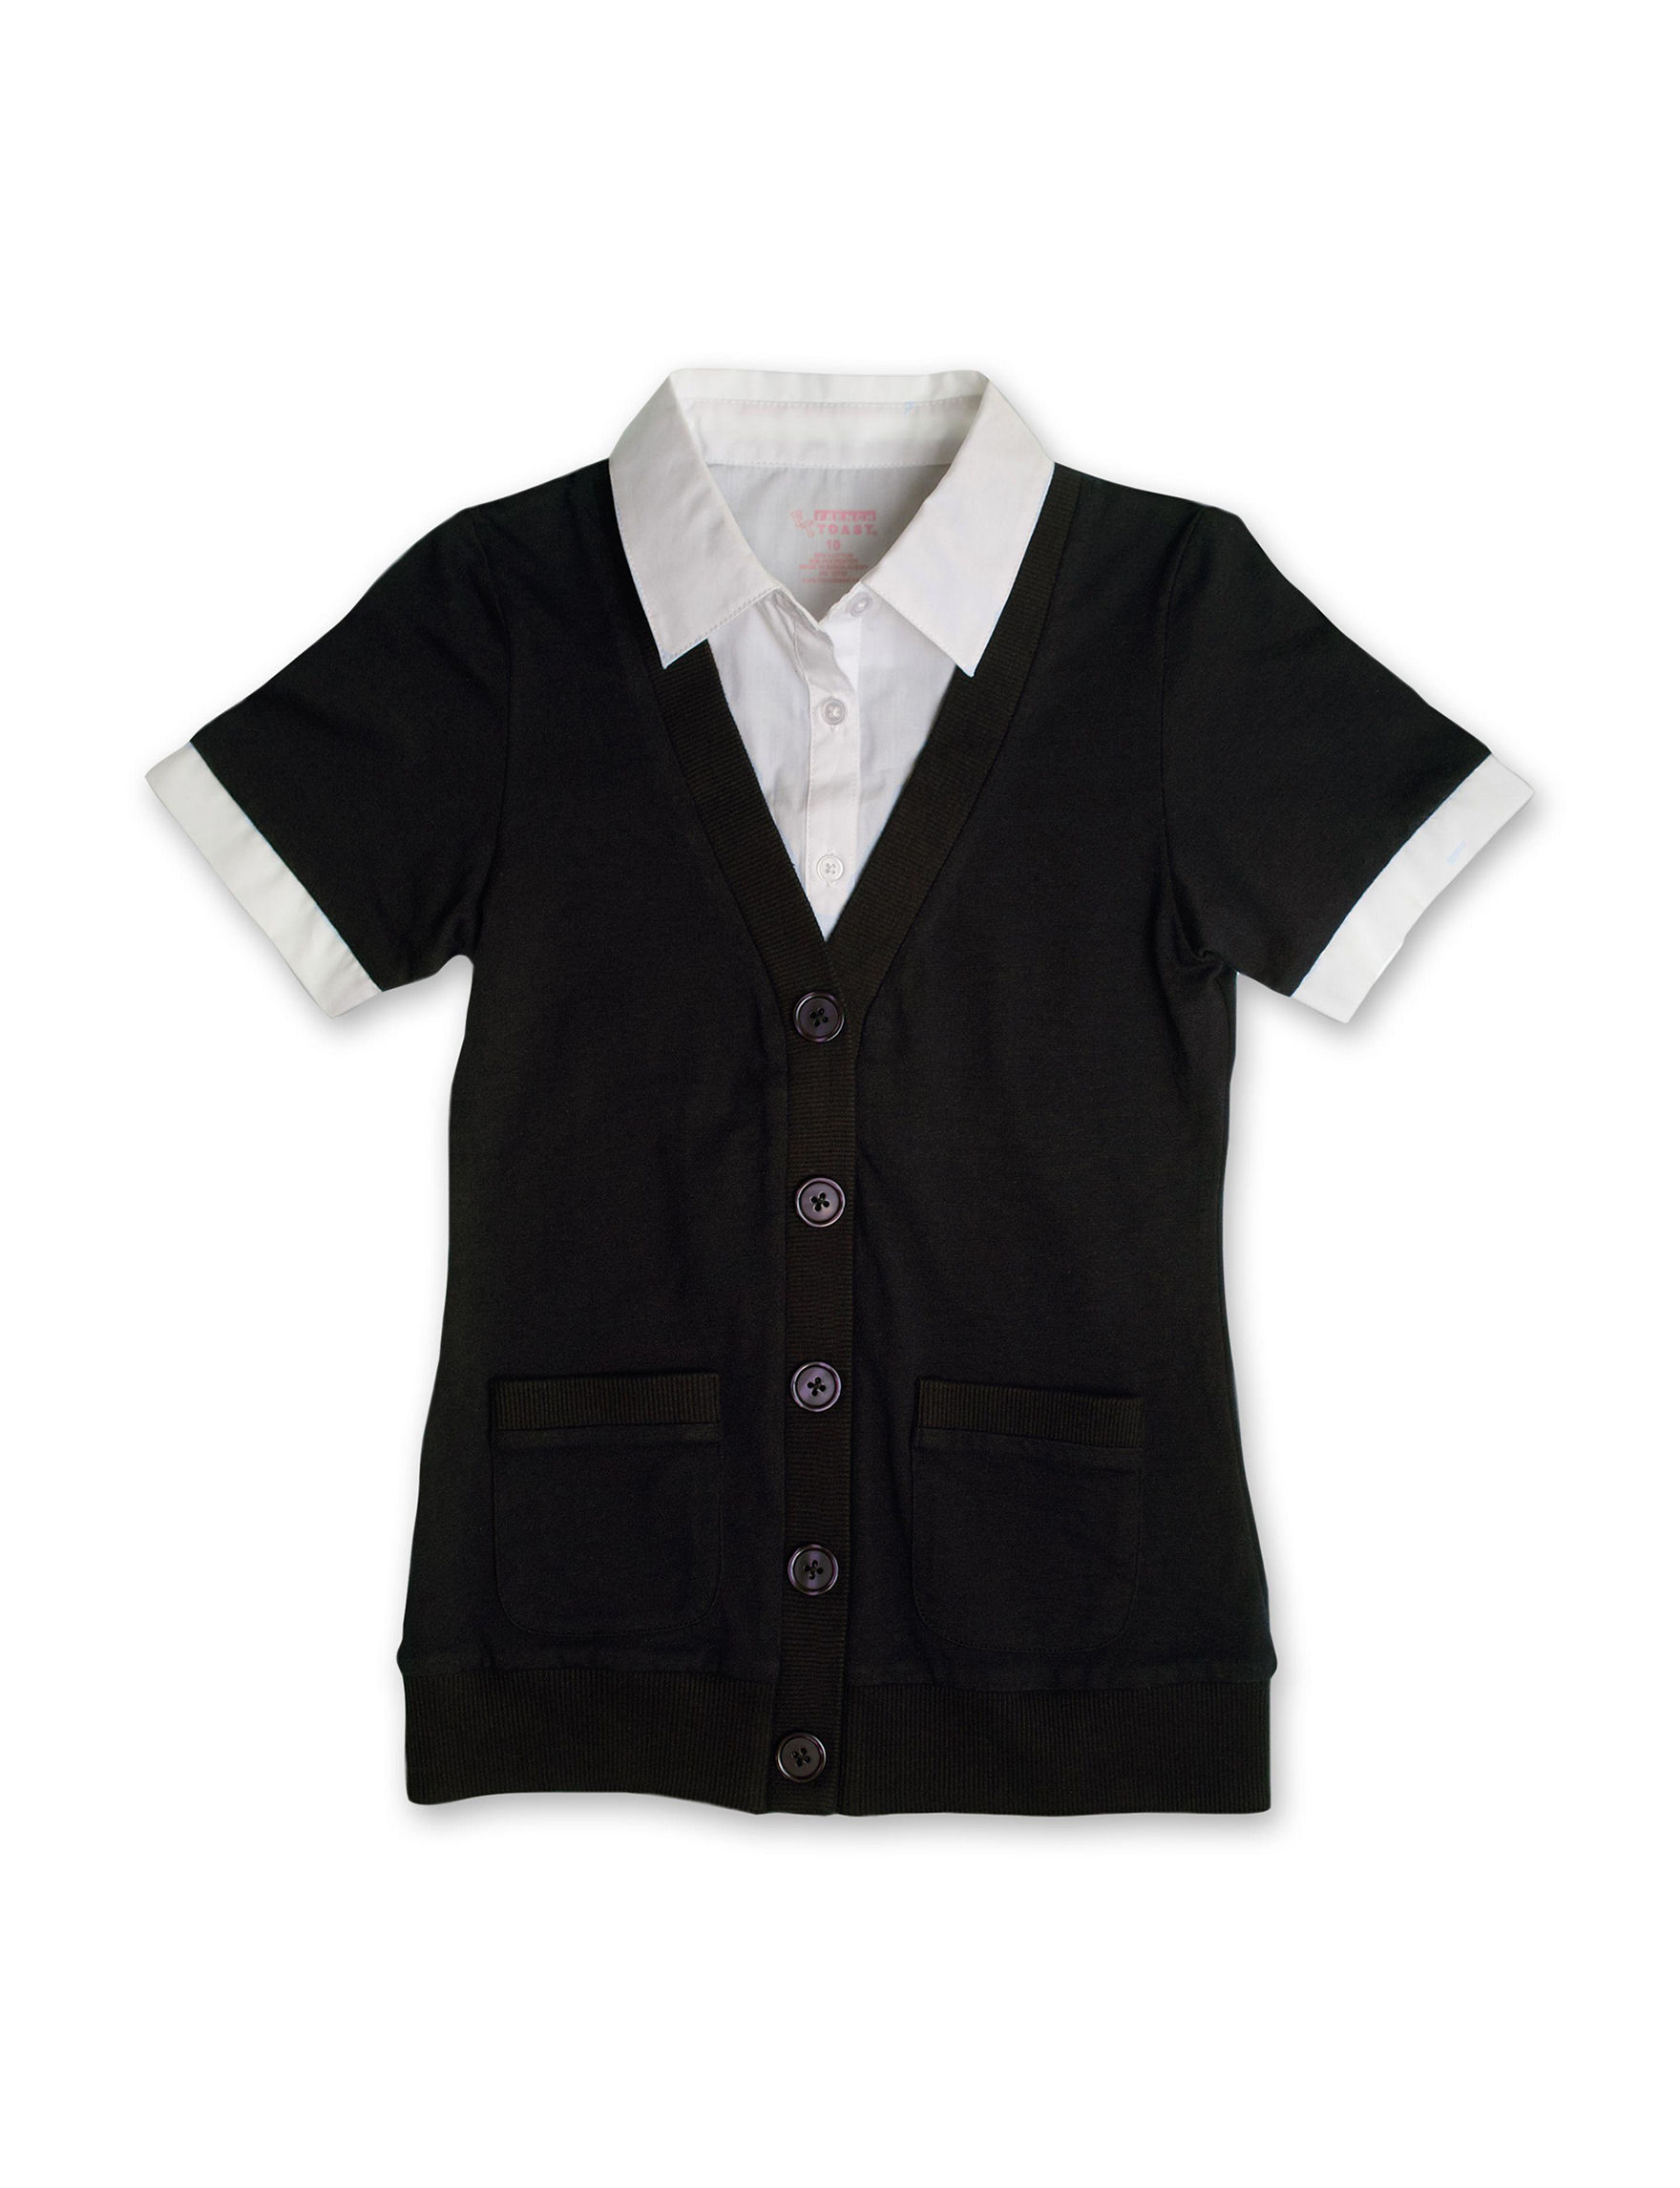 French Toast Black Shirts & Blouses